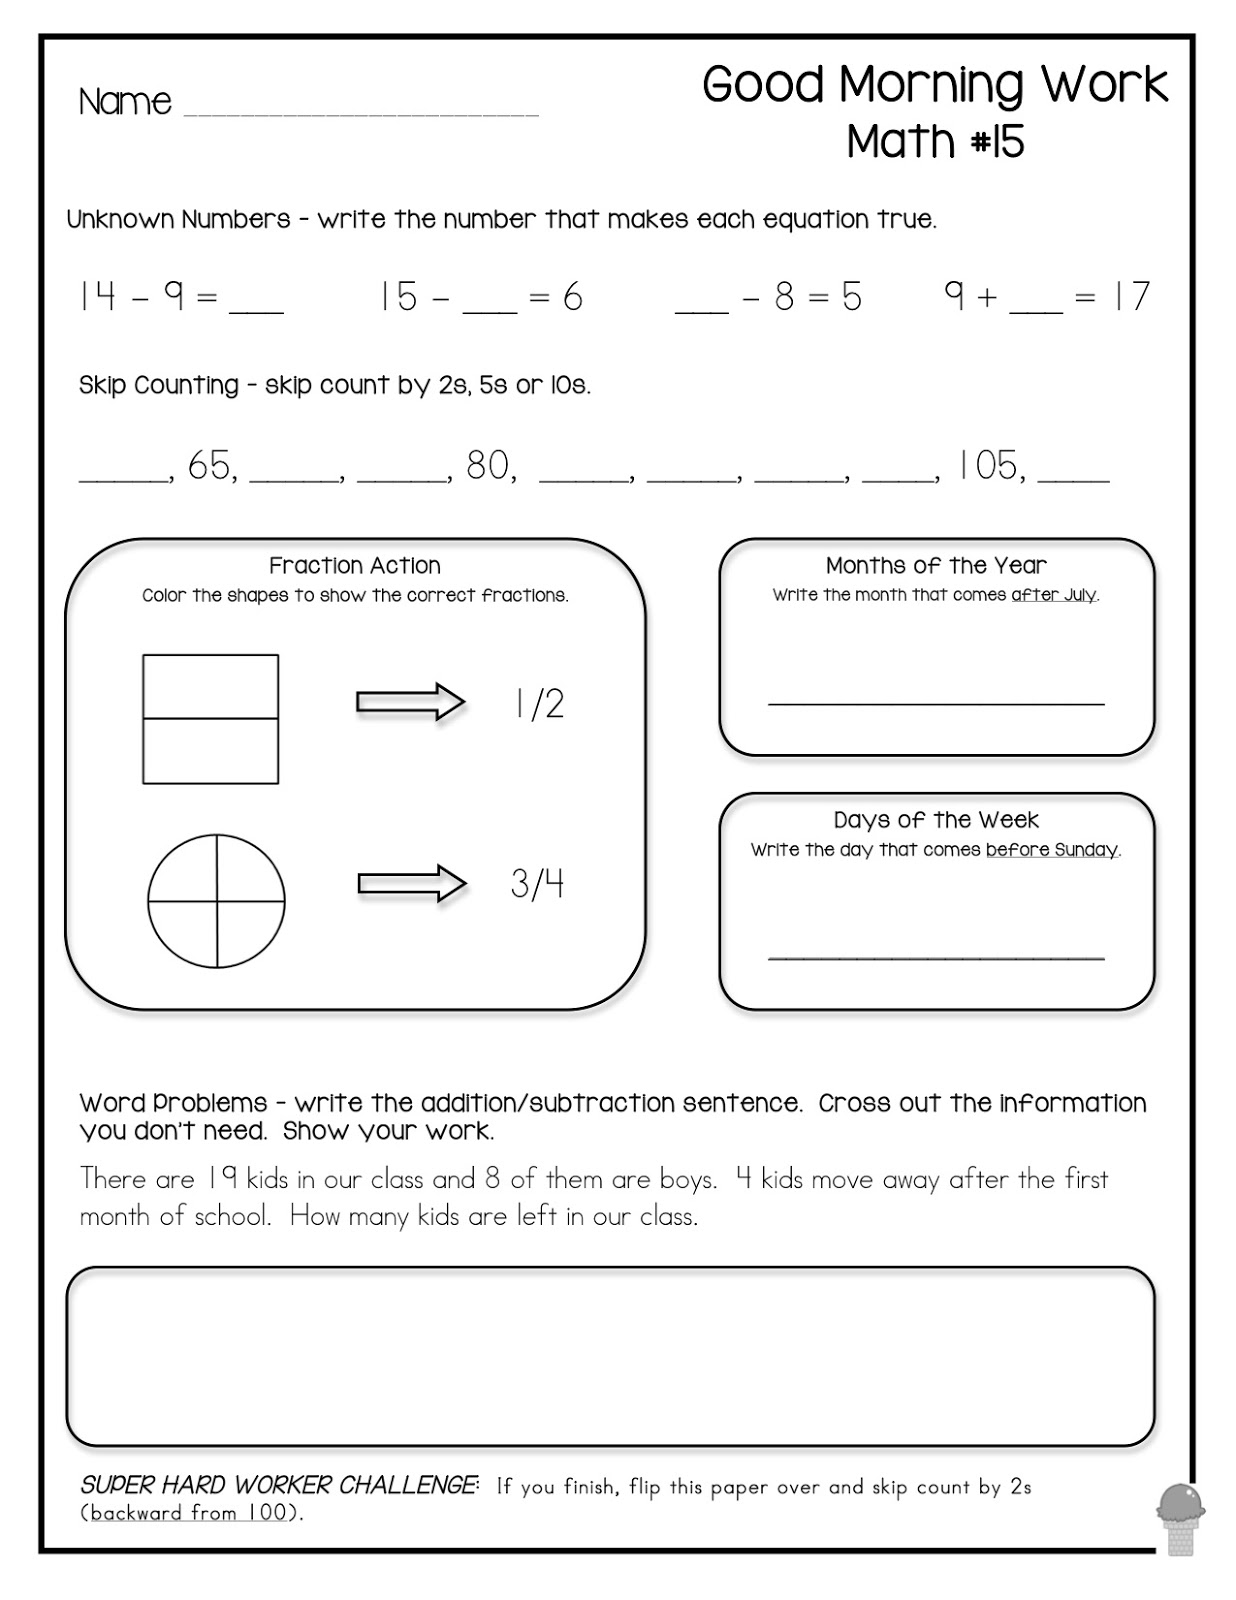 13 Best Images Of Morning Work Worksheets For Kindergarten